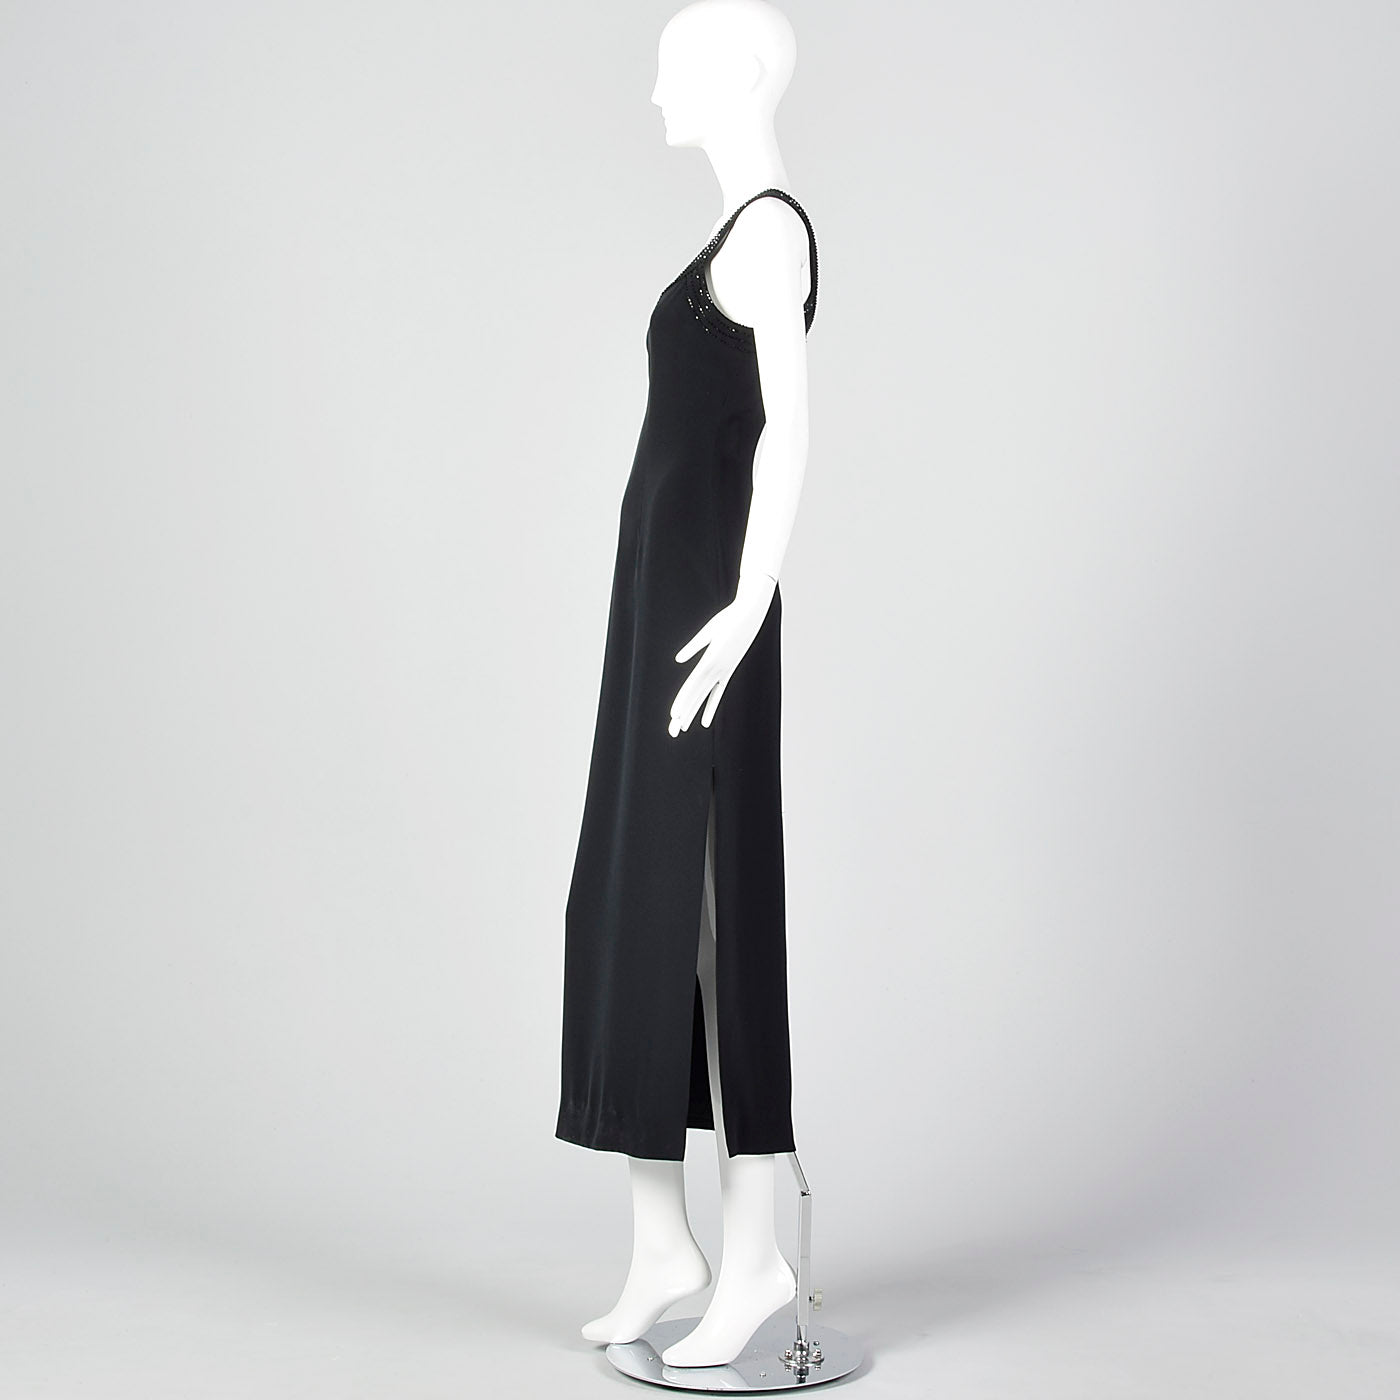 1990s Oleg Cassini Black Evening Dress